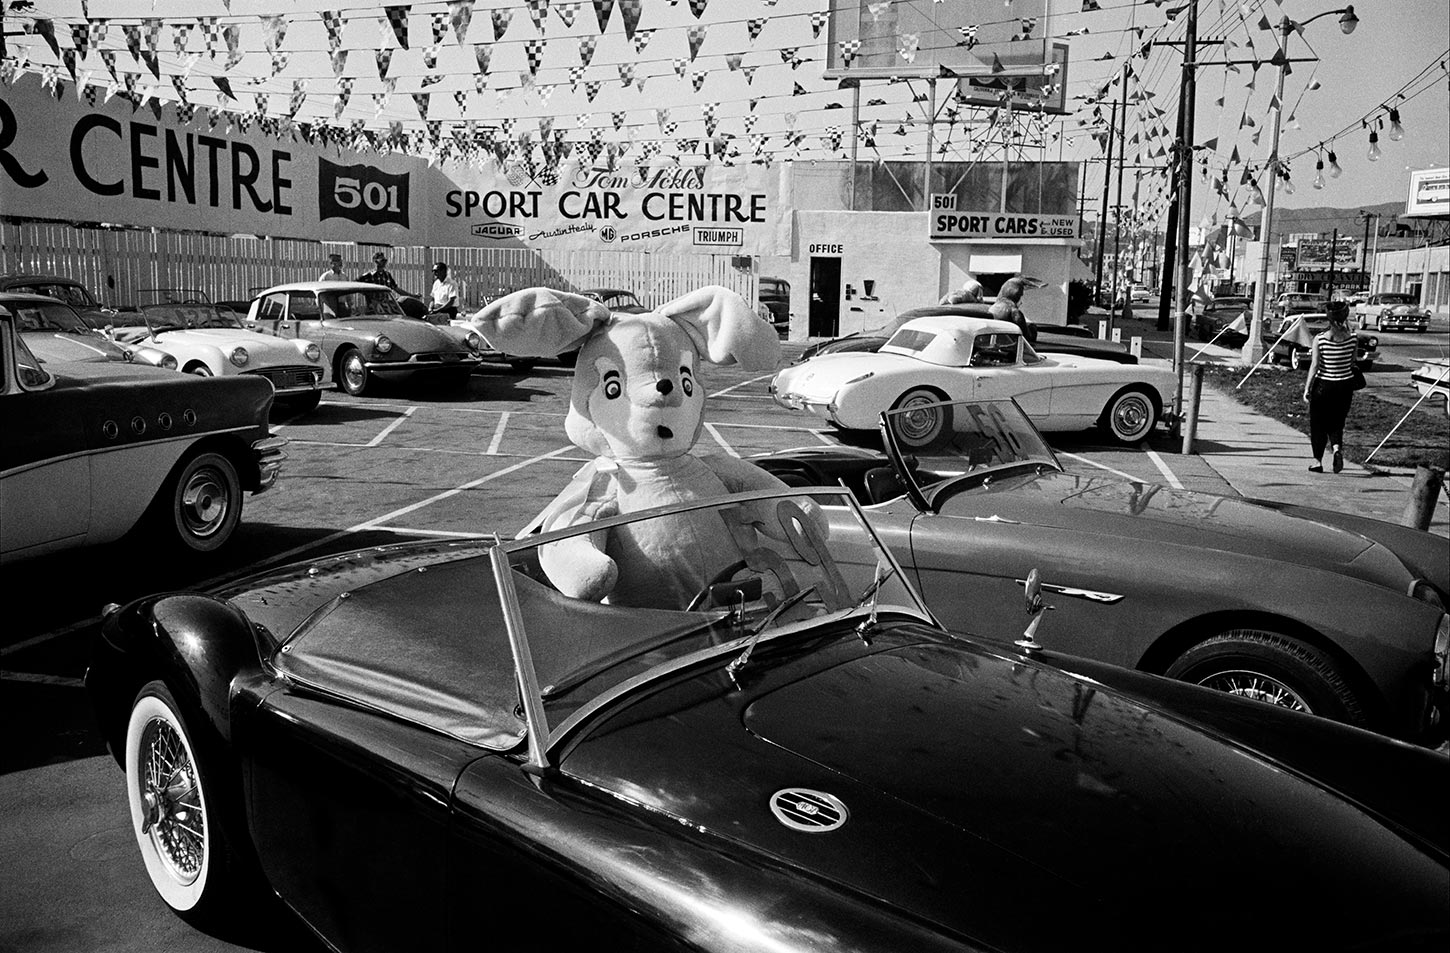 Used car lot on Wilshire Boulevard. Los Angeles, California, USA. 1960.